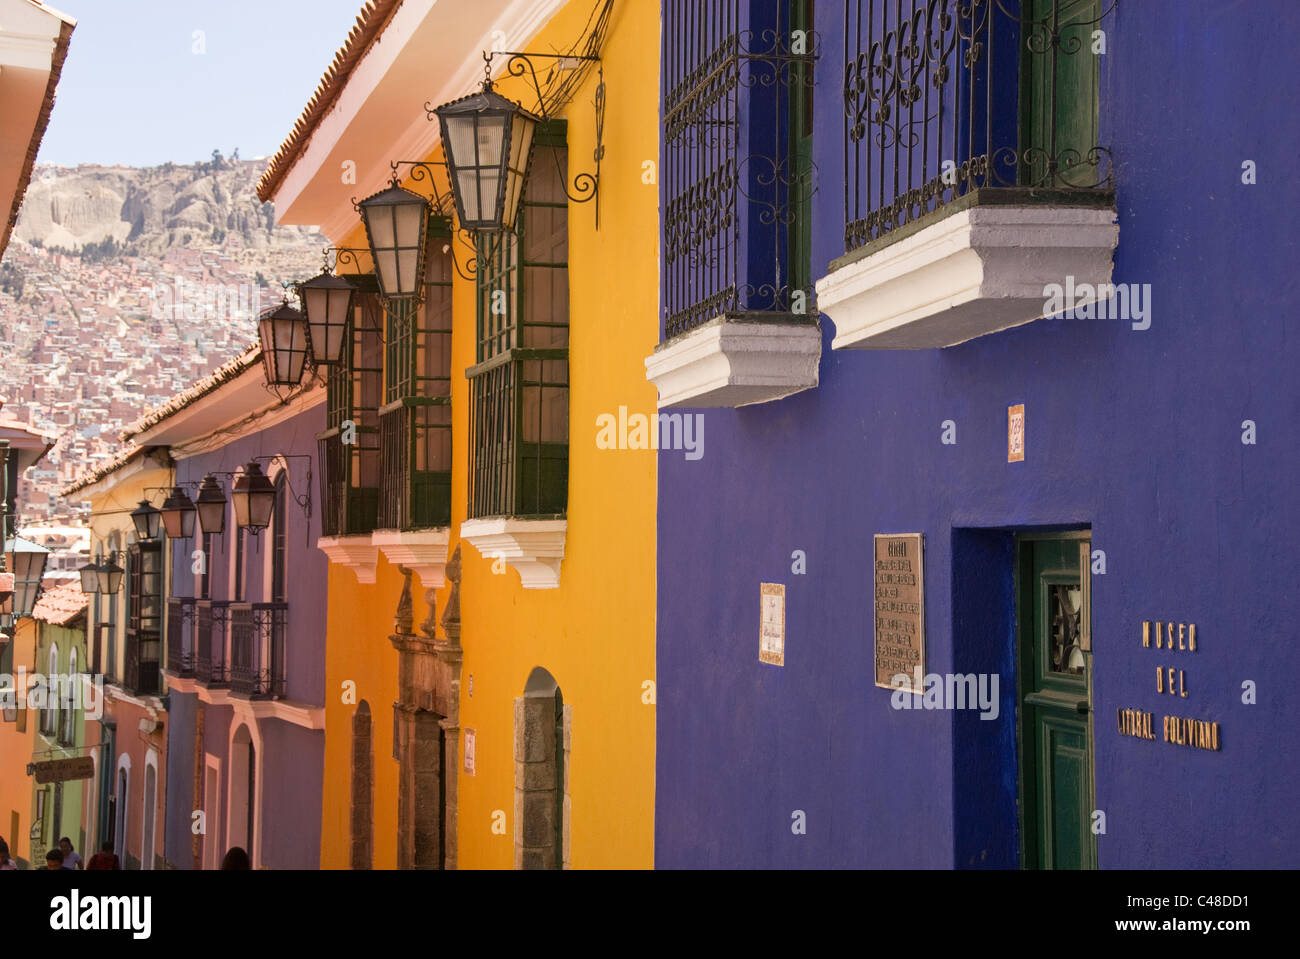 Street scene with colorful building facades. - Stock Image